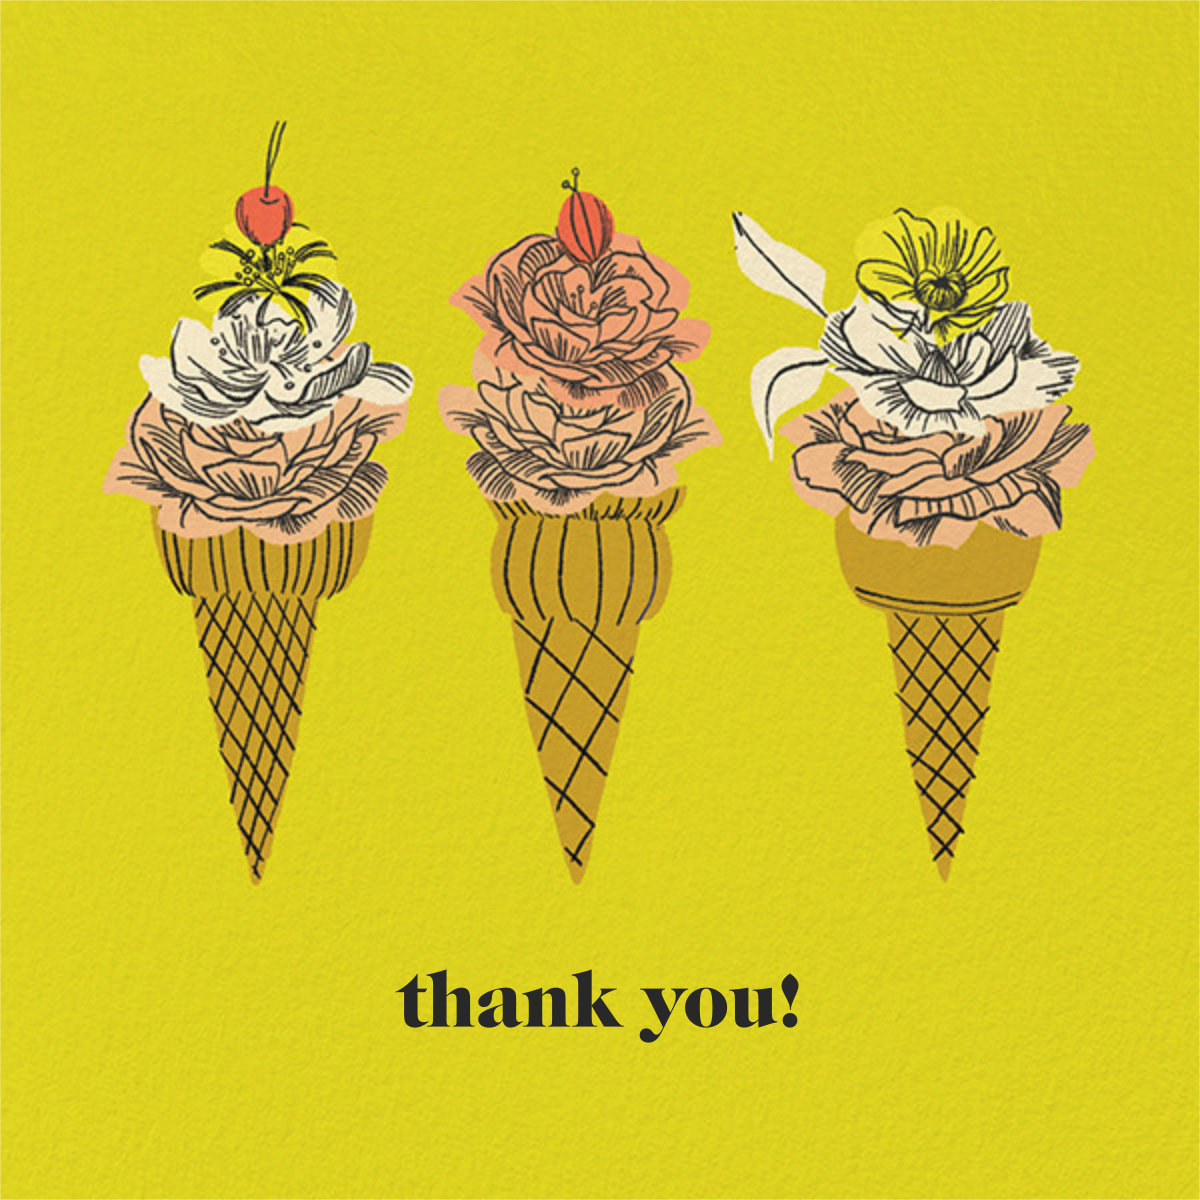 Flower Cones (Square) (Dylan Mierzwinski) - Red Cap Cards - Thank you